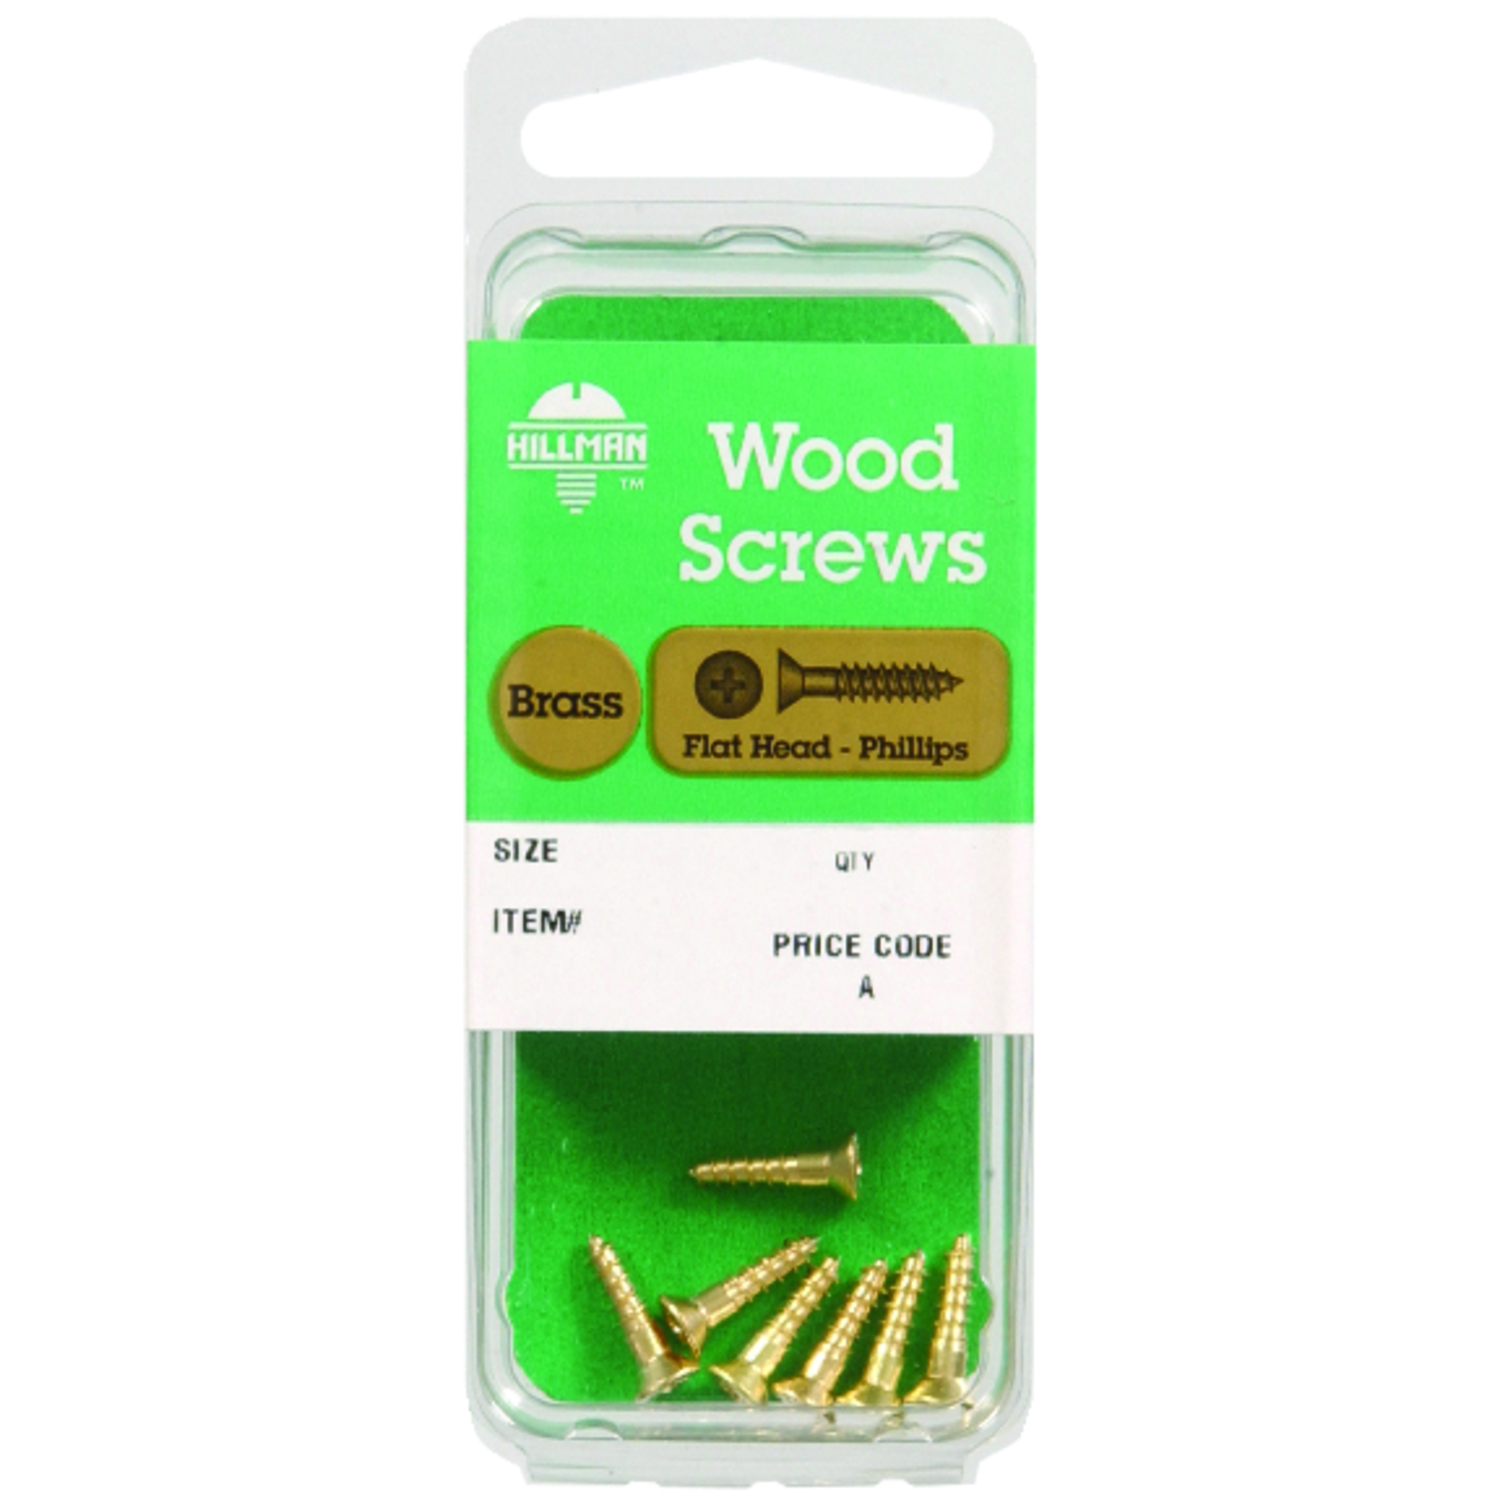 HILLMAN  No. 12   x 1-1/2 in. L Phillips  Brass  Wood Screws  2 pk Flat